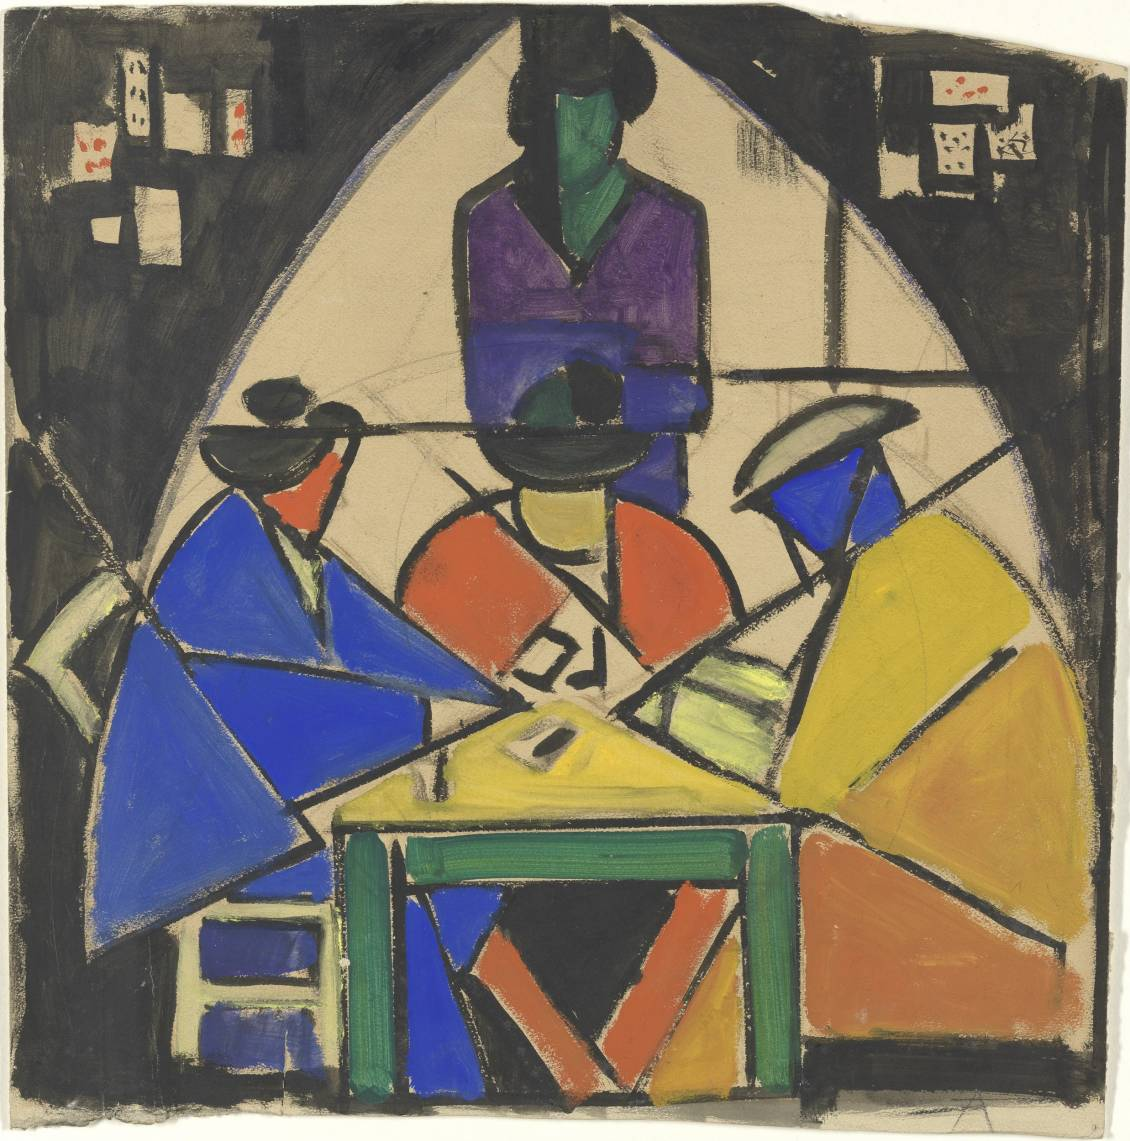 Theo van Doesburg, Study for the card players, 1916